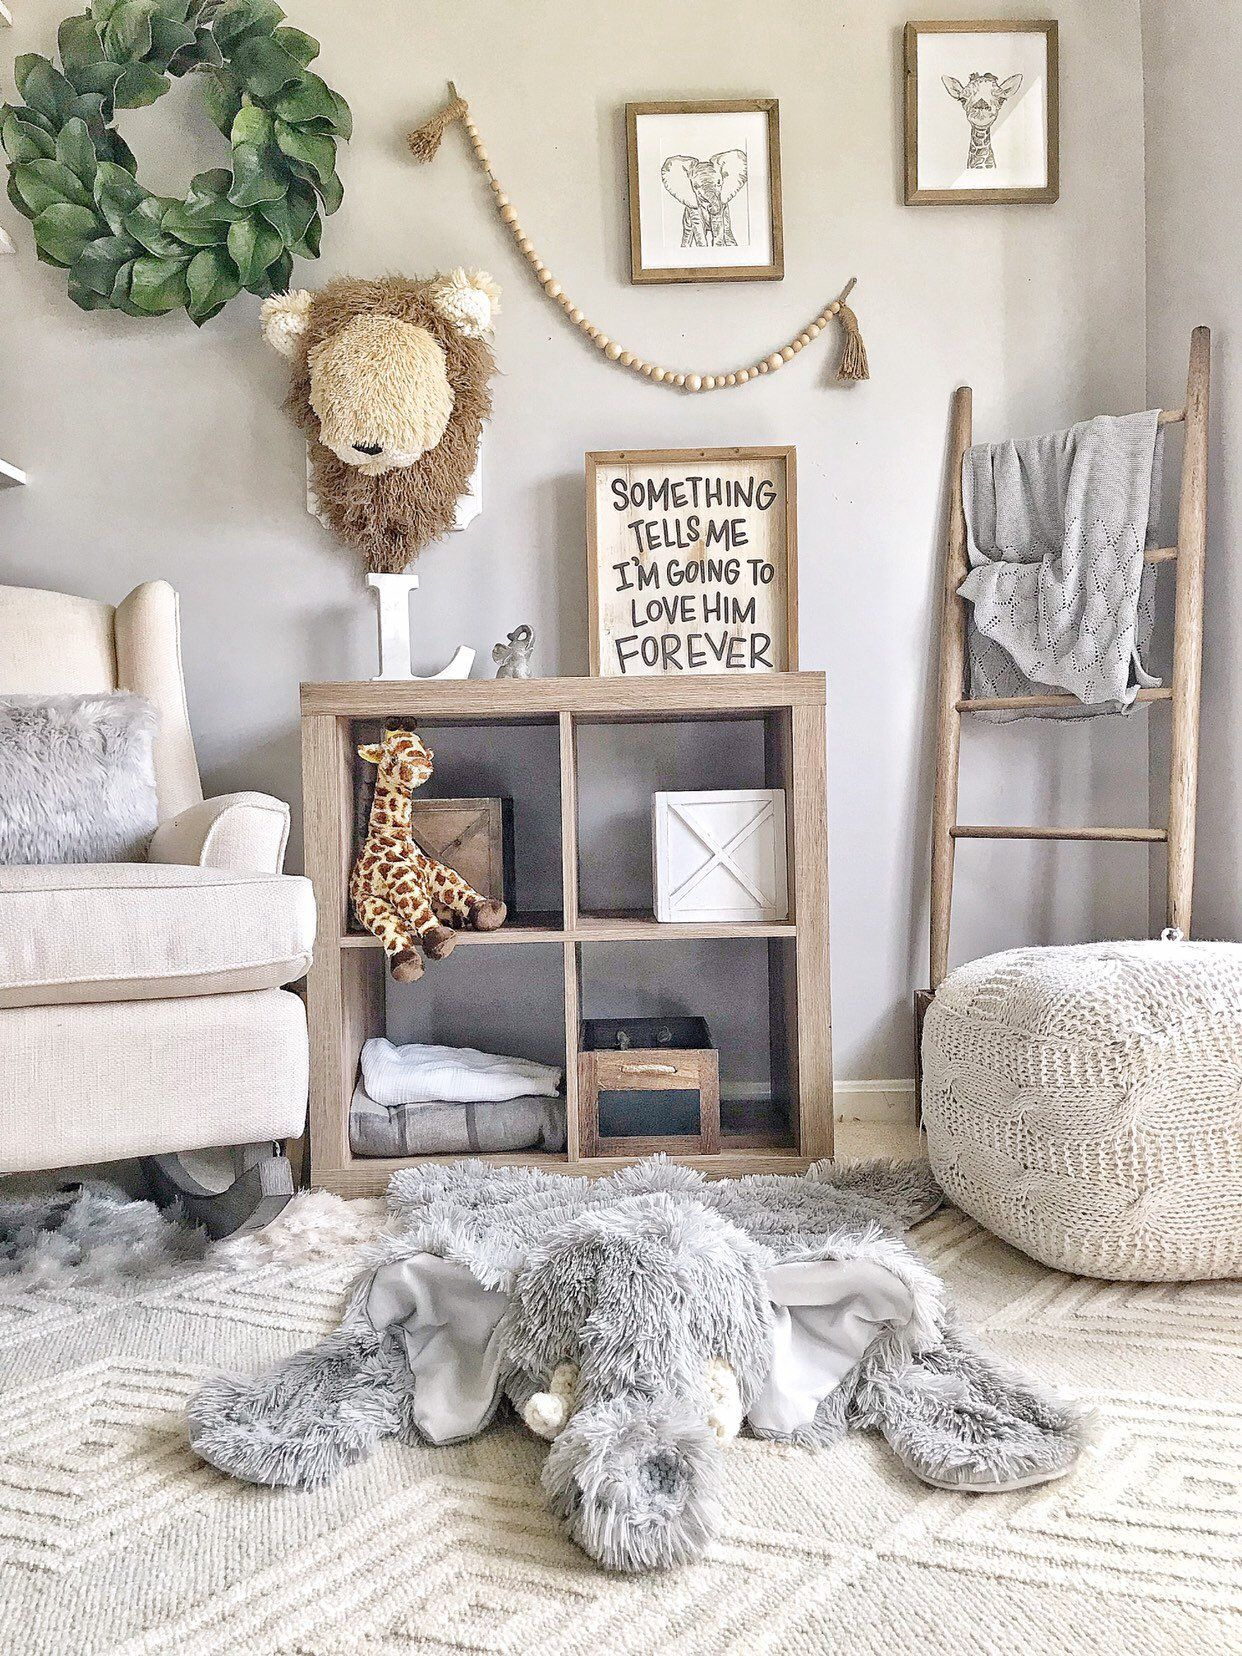 10 Stunning Safari Decorating Ideas For Living Room